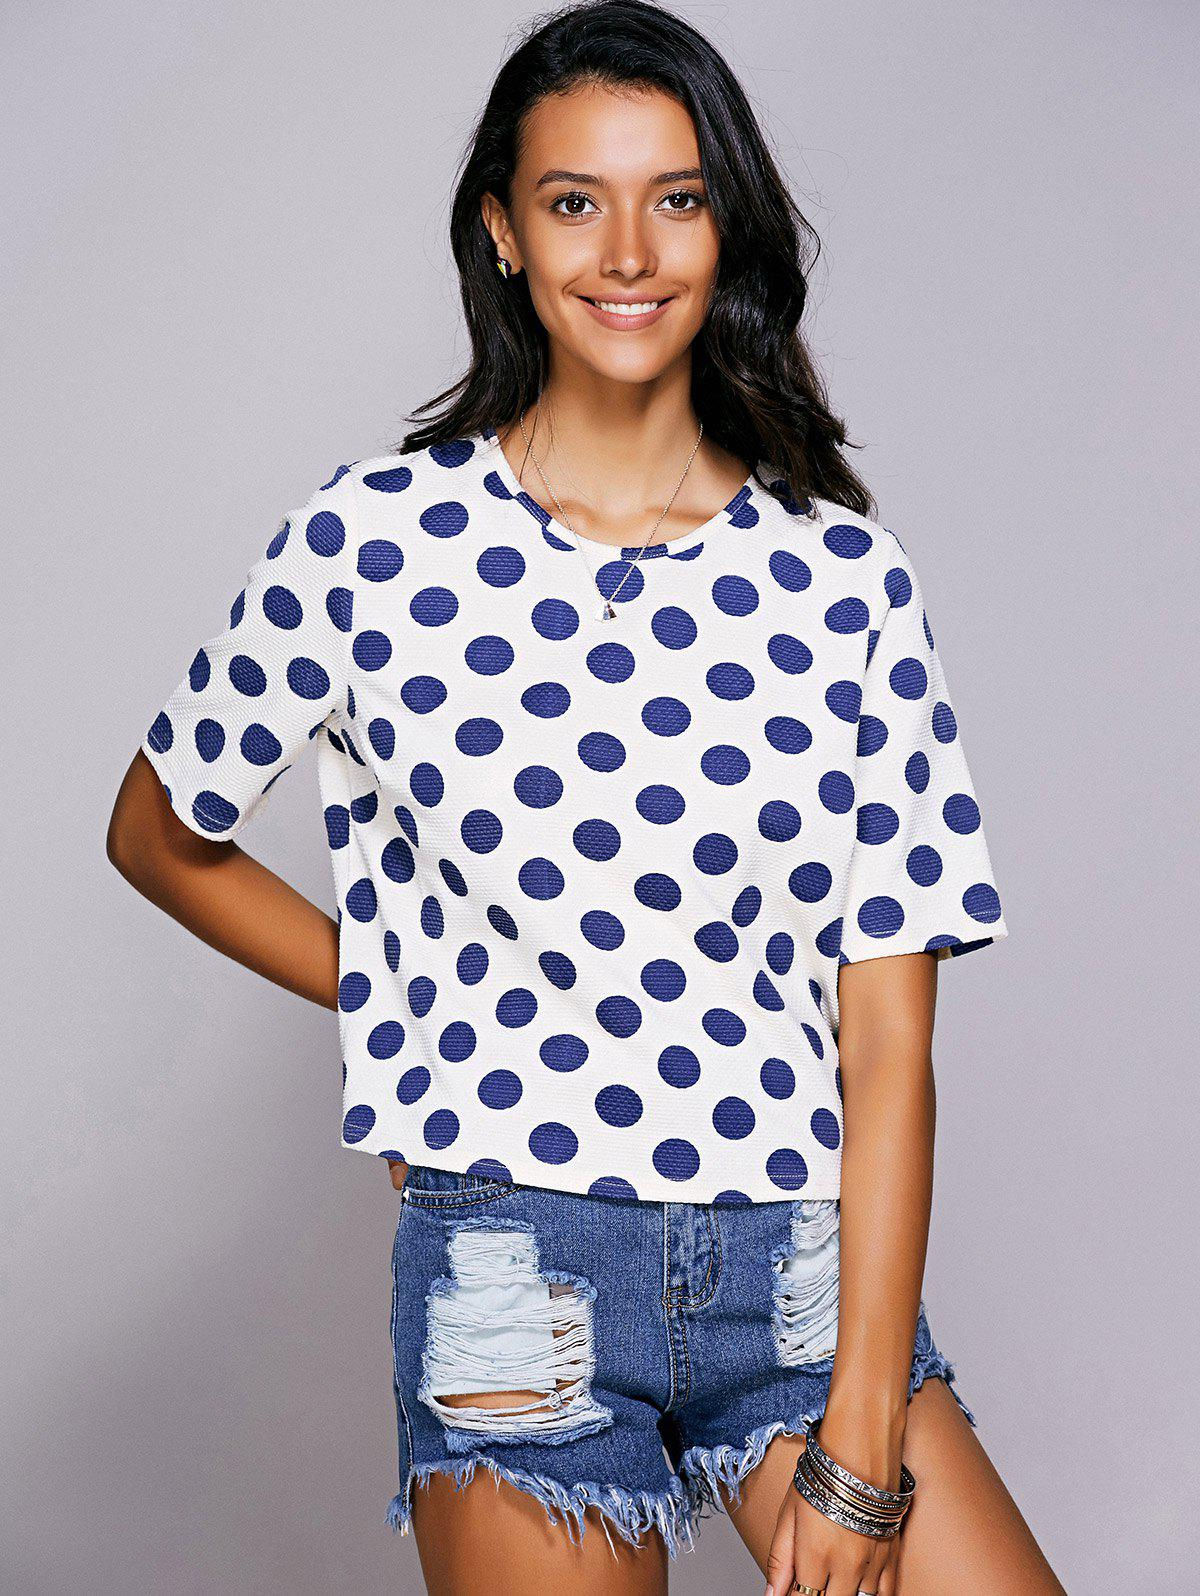 Casual Women's Jewel Neck Polka Dot Short Sleeve Tee - BLUE L